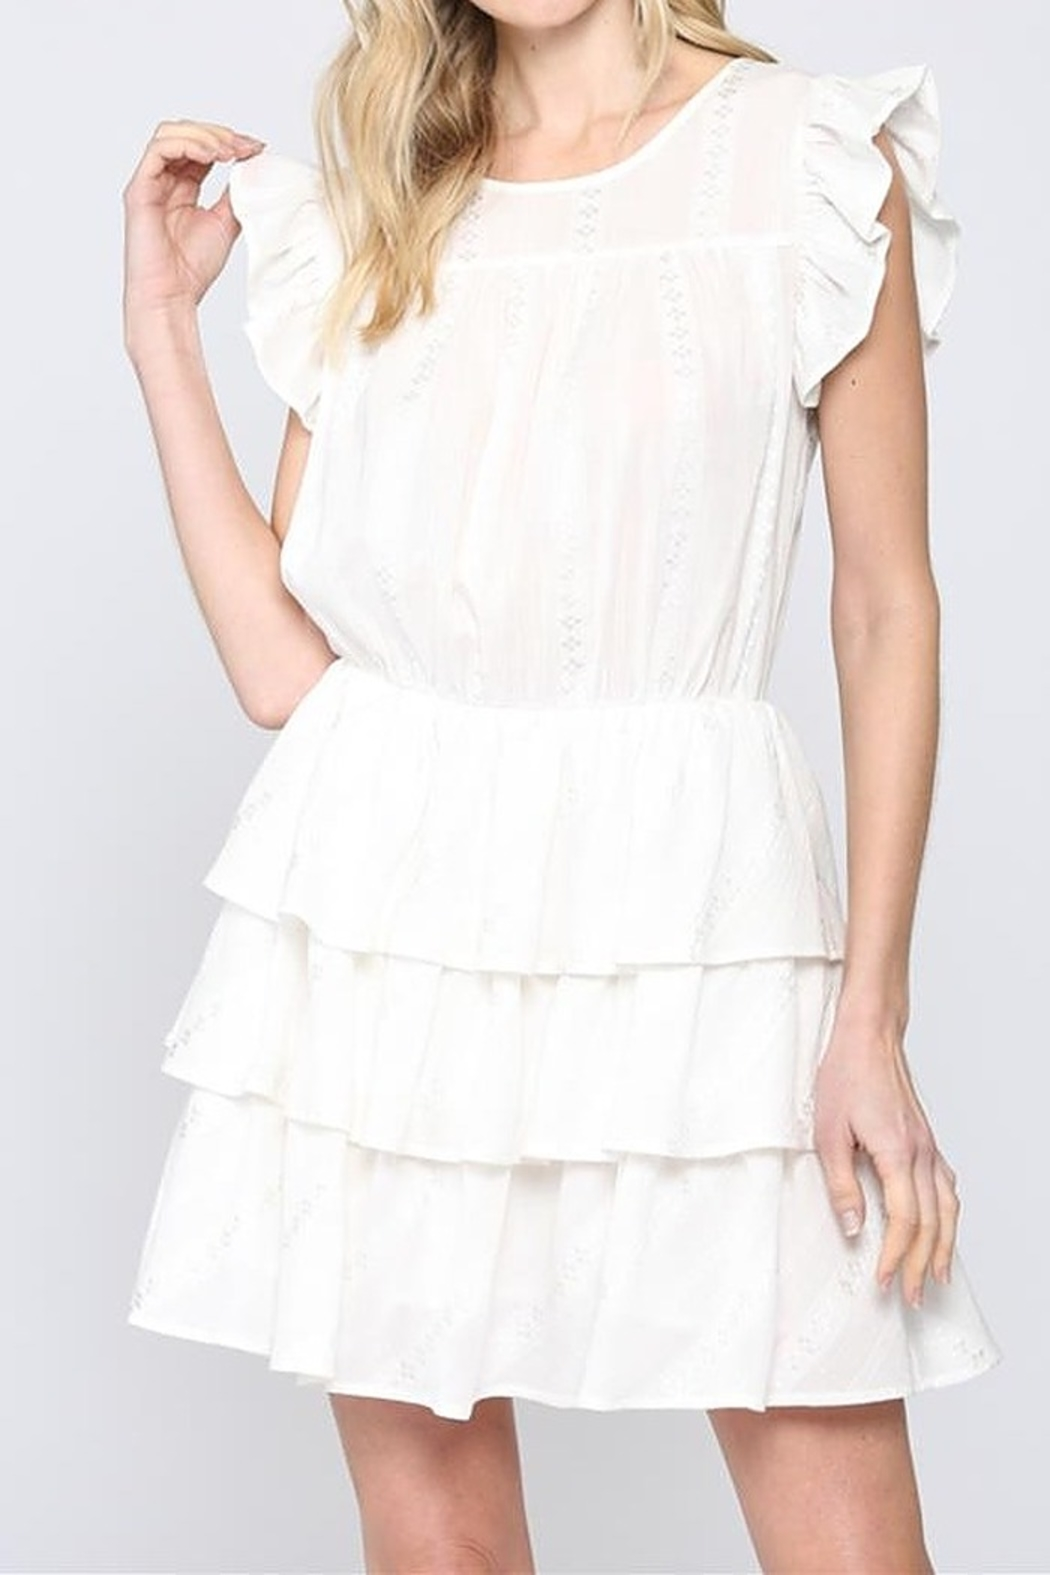 FATE by LFD White Tiered dress - Main Image